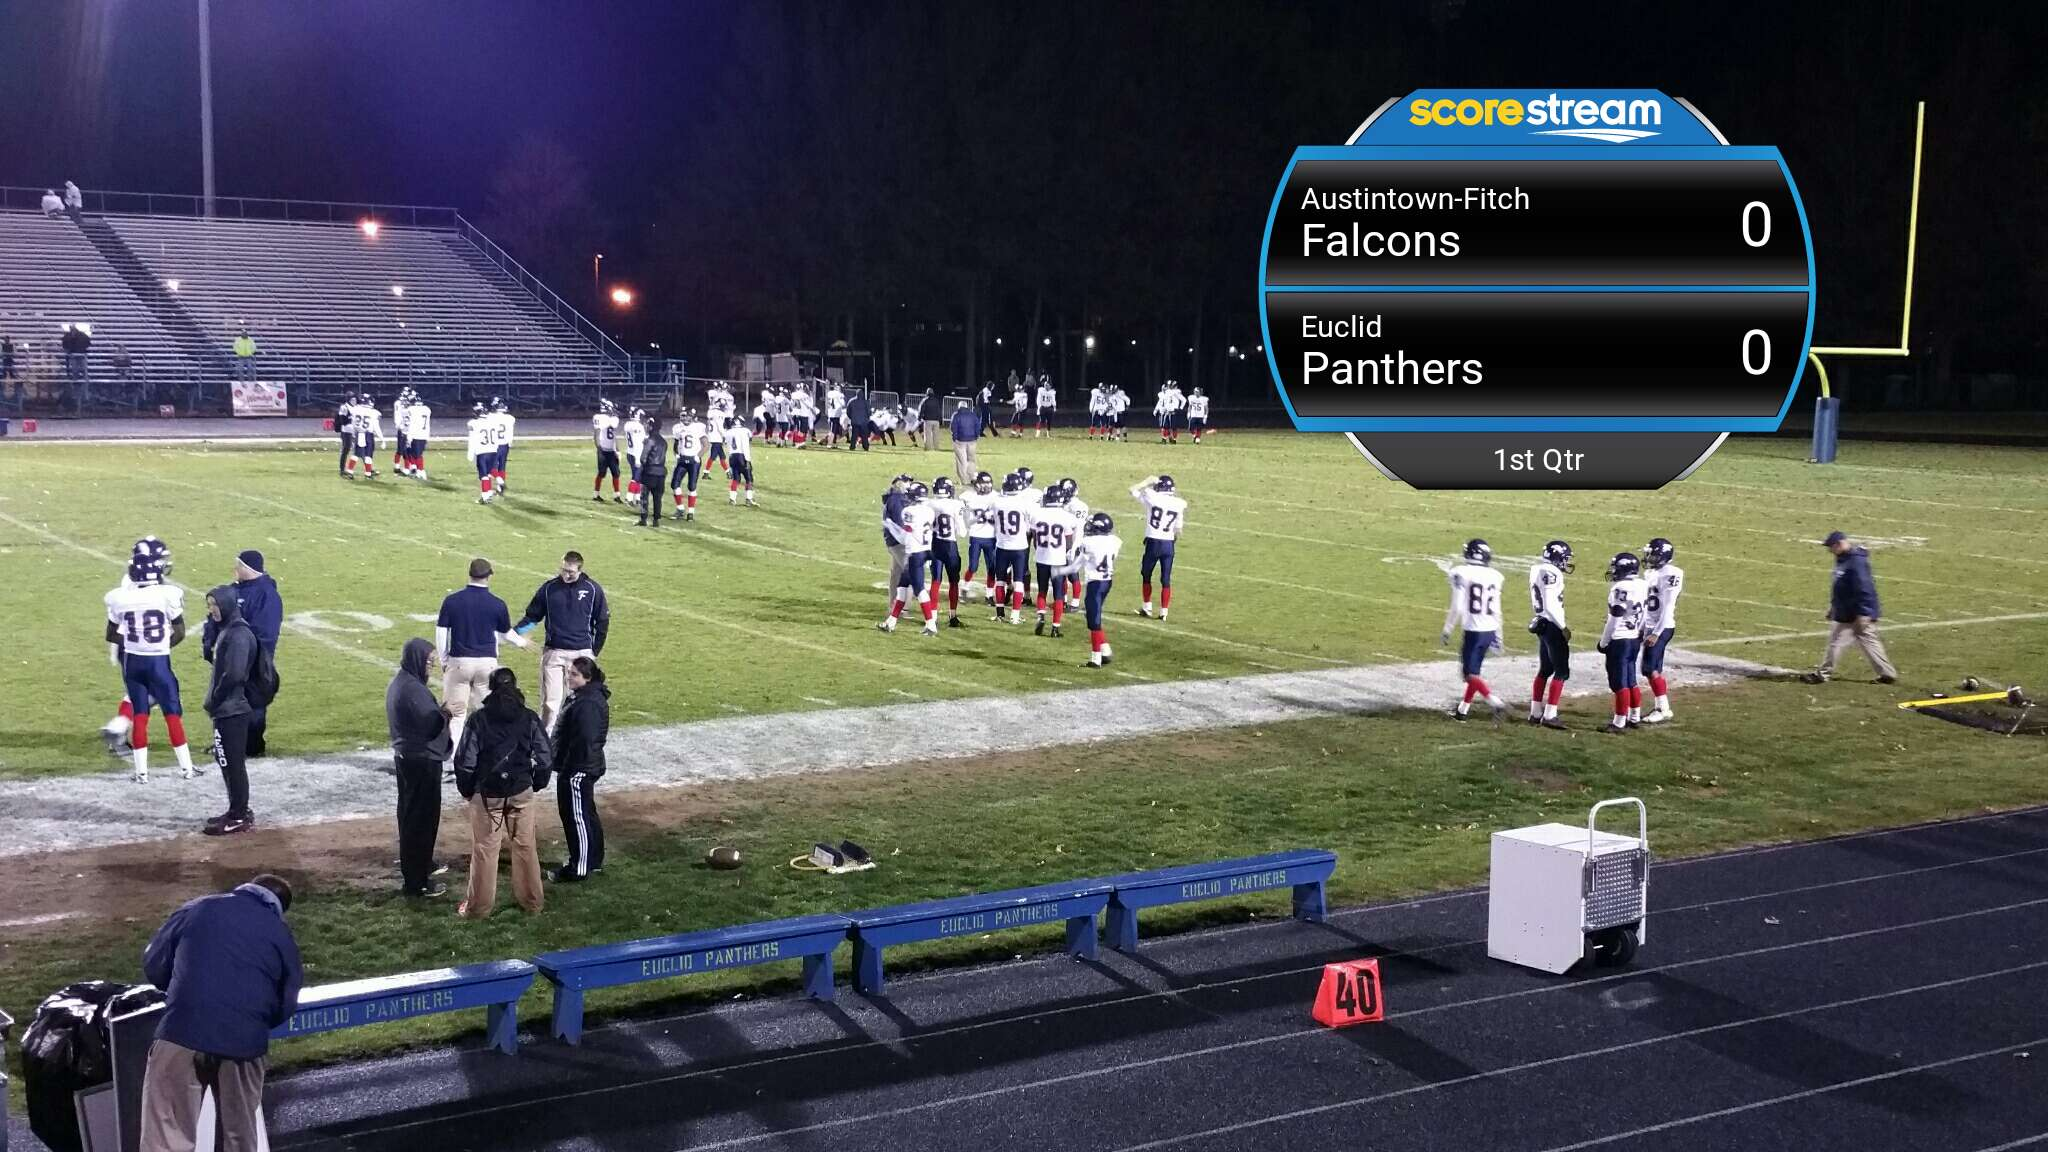 What Are The Panthers Score >> The Euclid Panthers defeat the Austintown Fitch Falcons 28 to 7 - ScoreStream